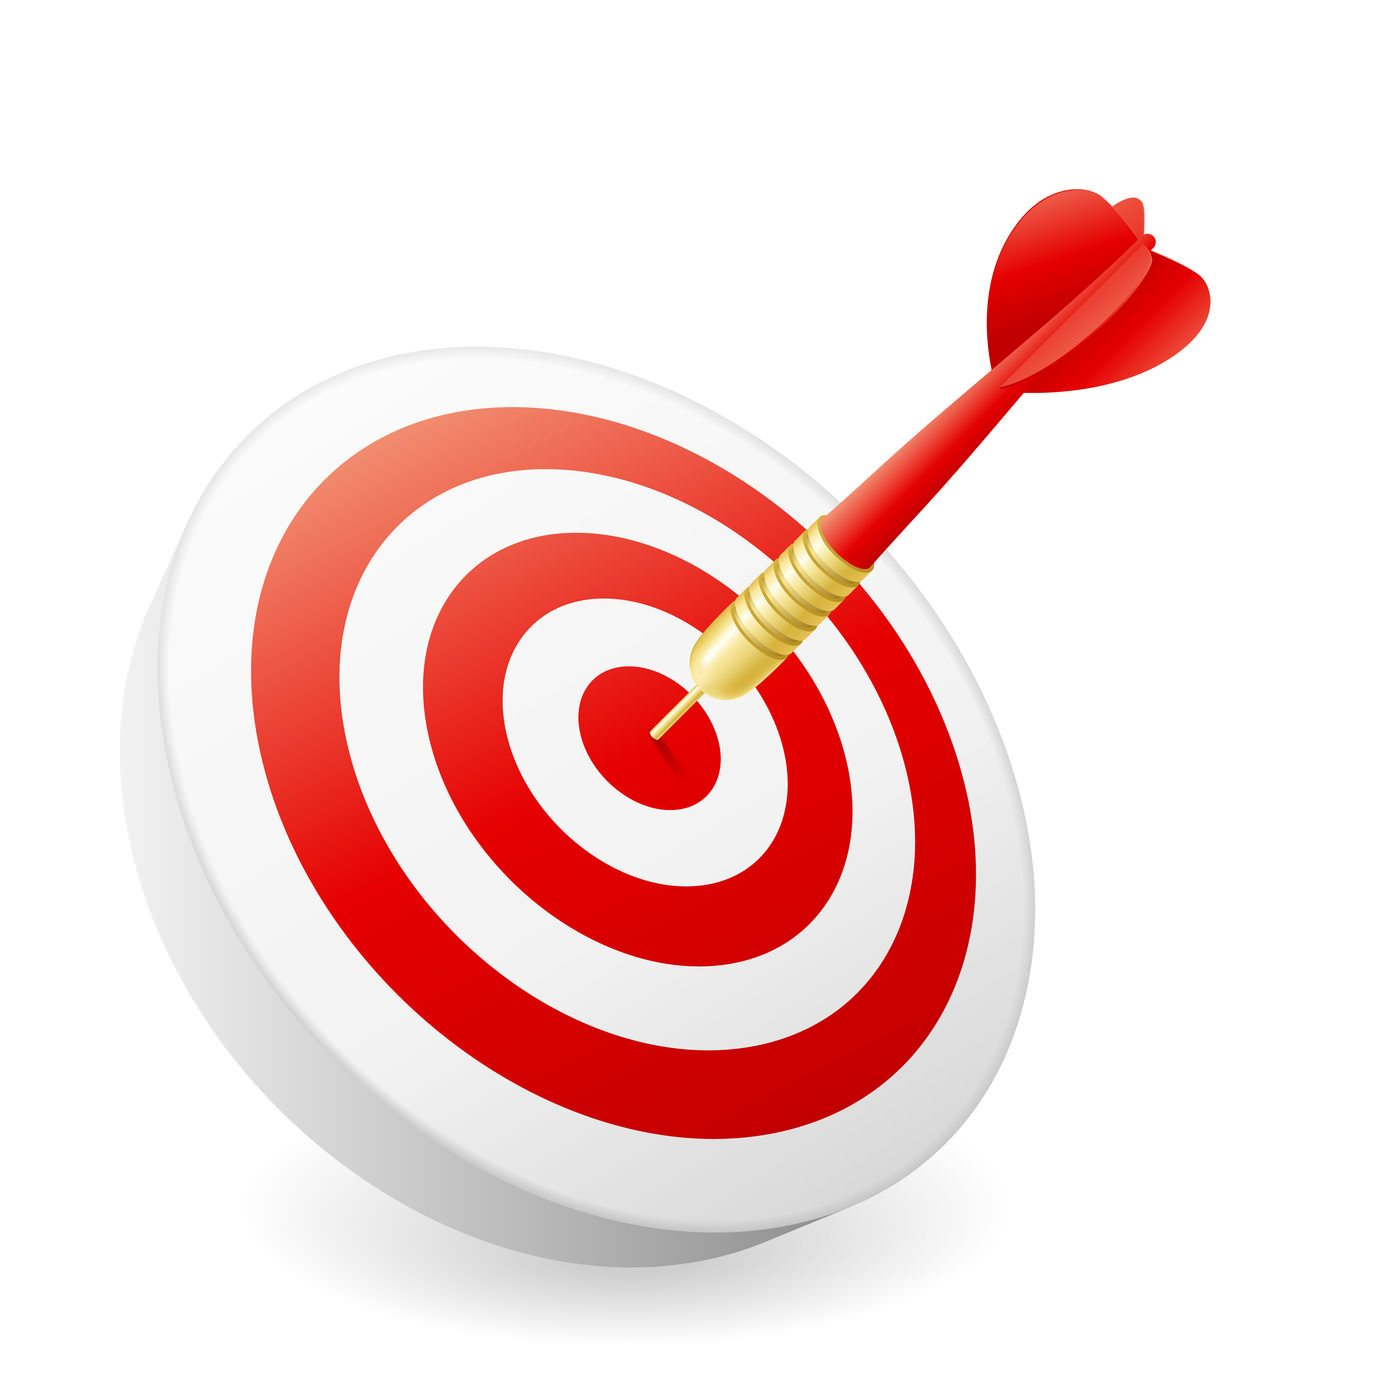 Bullseye clipart hit the target. What s in a